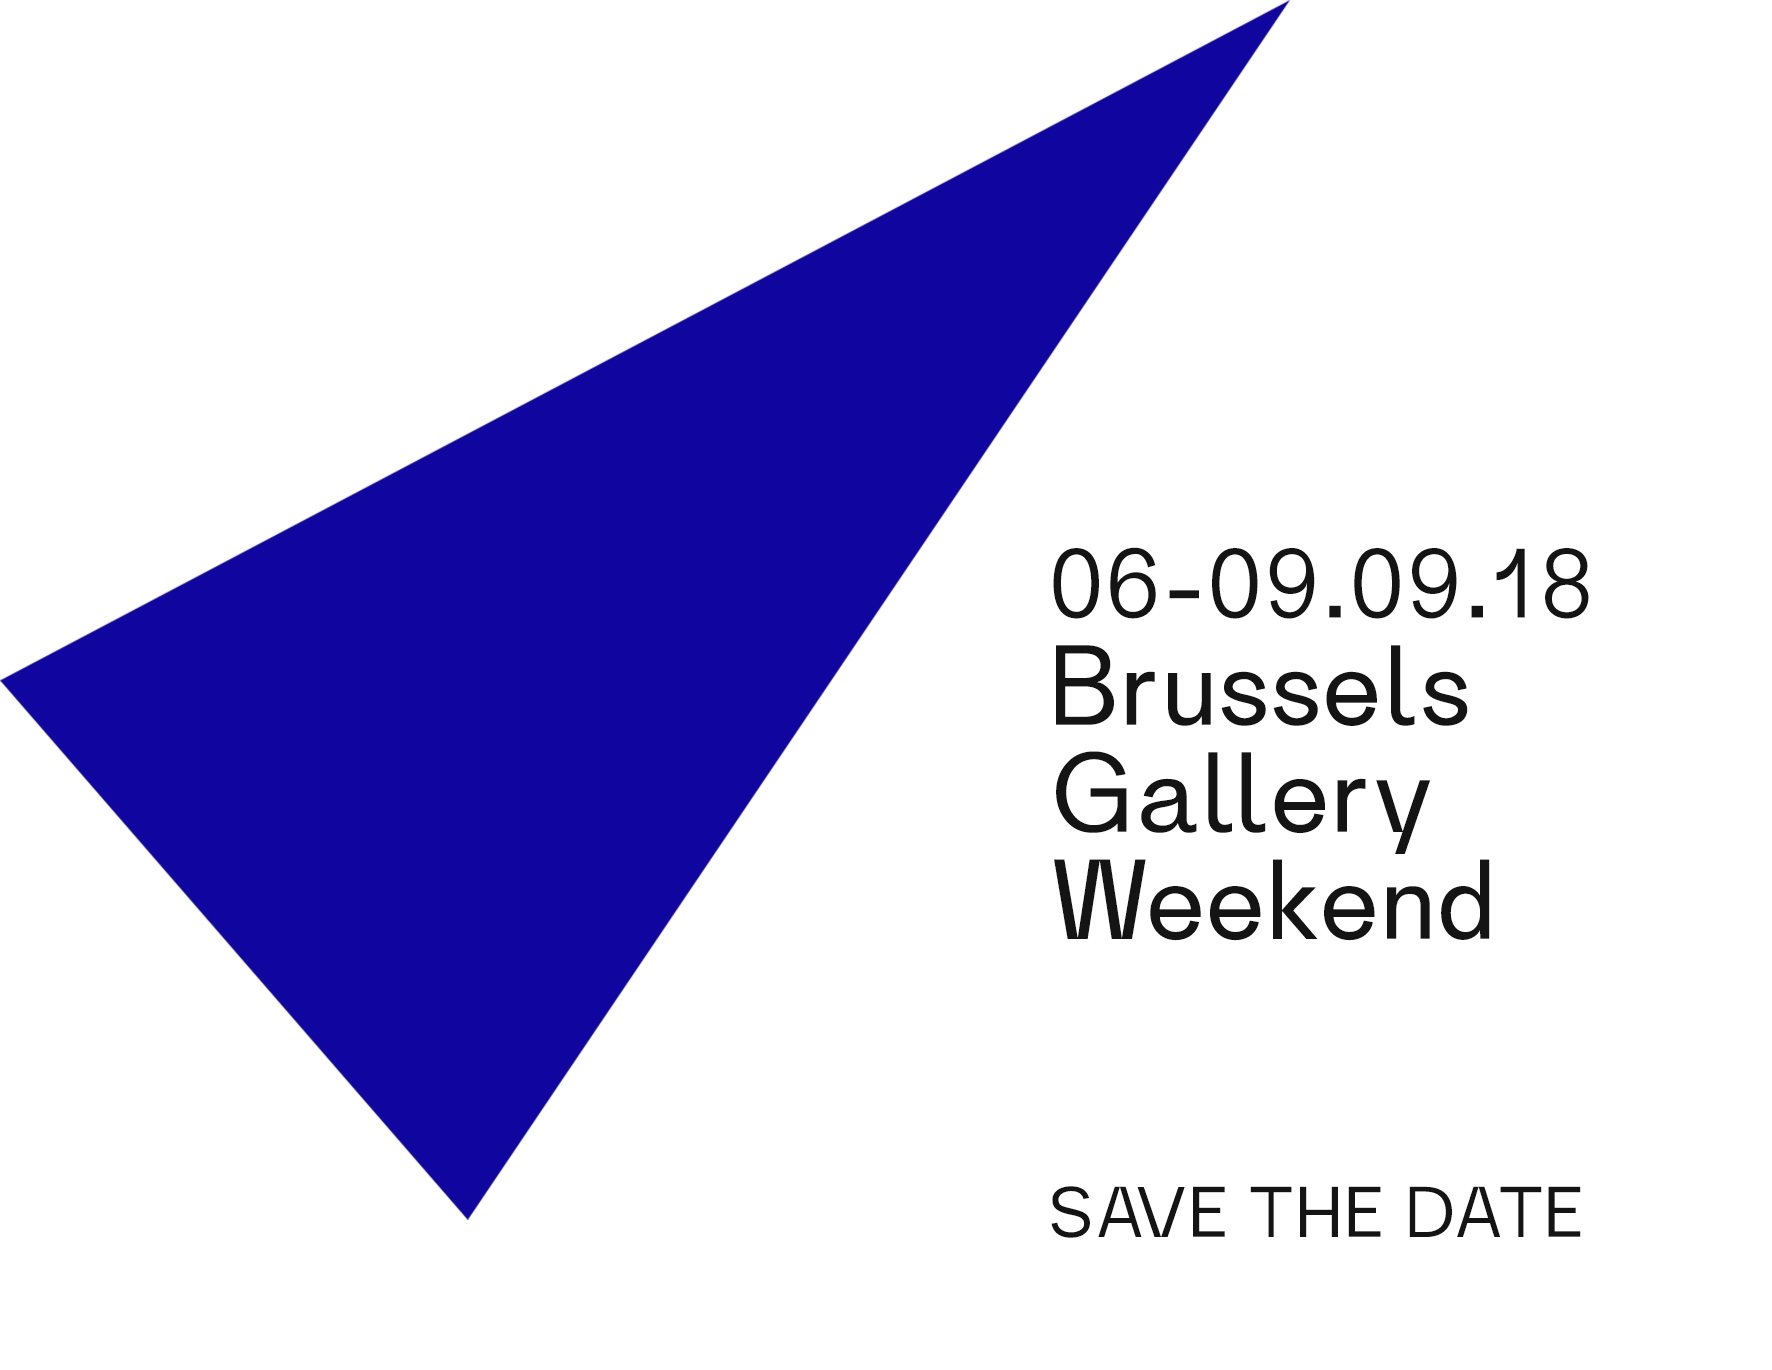 Brussels Gallery Weekend 2018